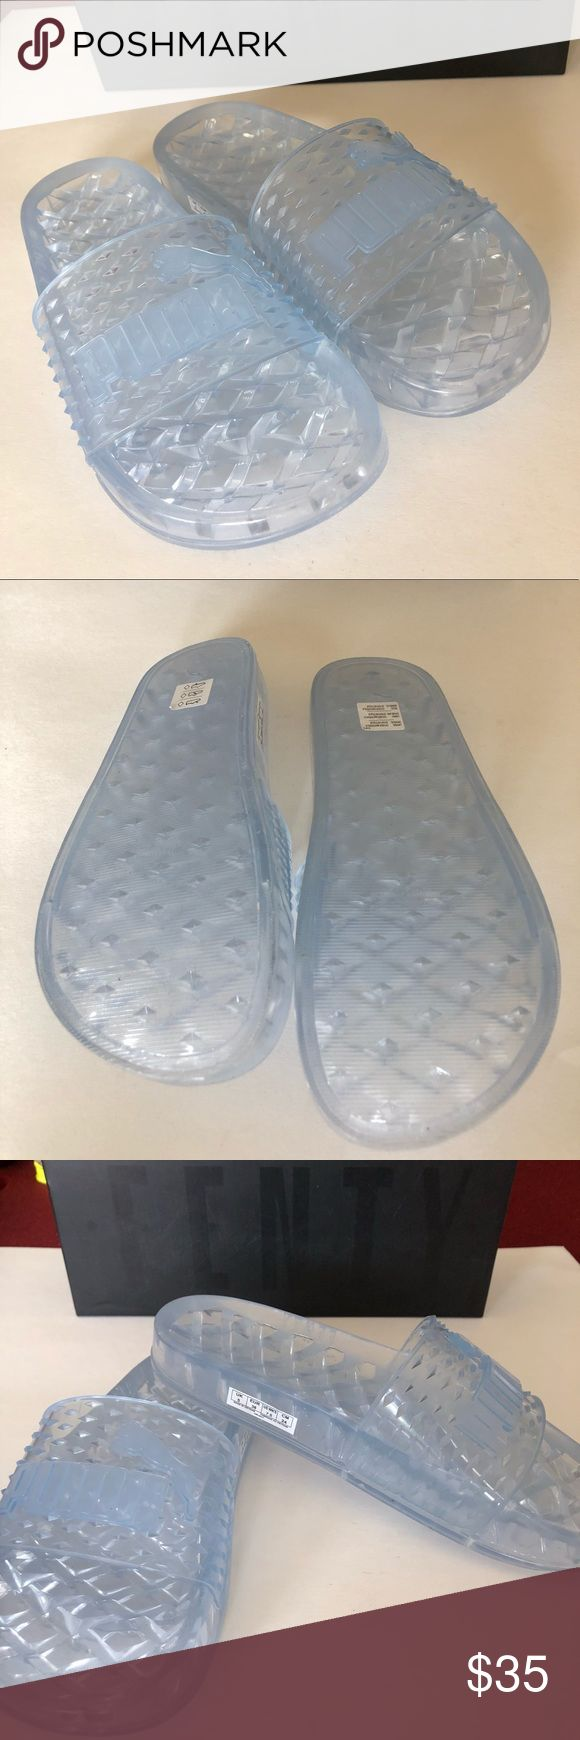 New Puma X Fenty By Rihanna White Jelly Slides Jelly Slide Womens brand new Fenty by Rihanna. Come with the box. If you have any questions please do not hesitate to ask. These do not come with the dust bag. For sizing info check the Puma website they can give you a better answer than I could. Thank you for looking. Puma Shoes Sandals